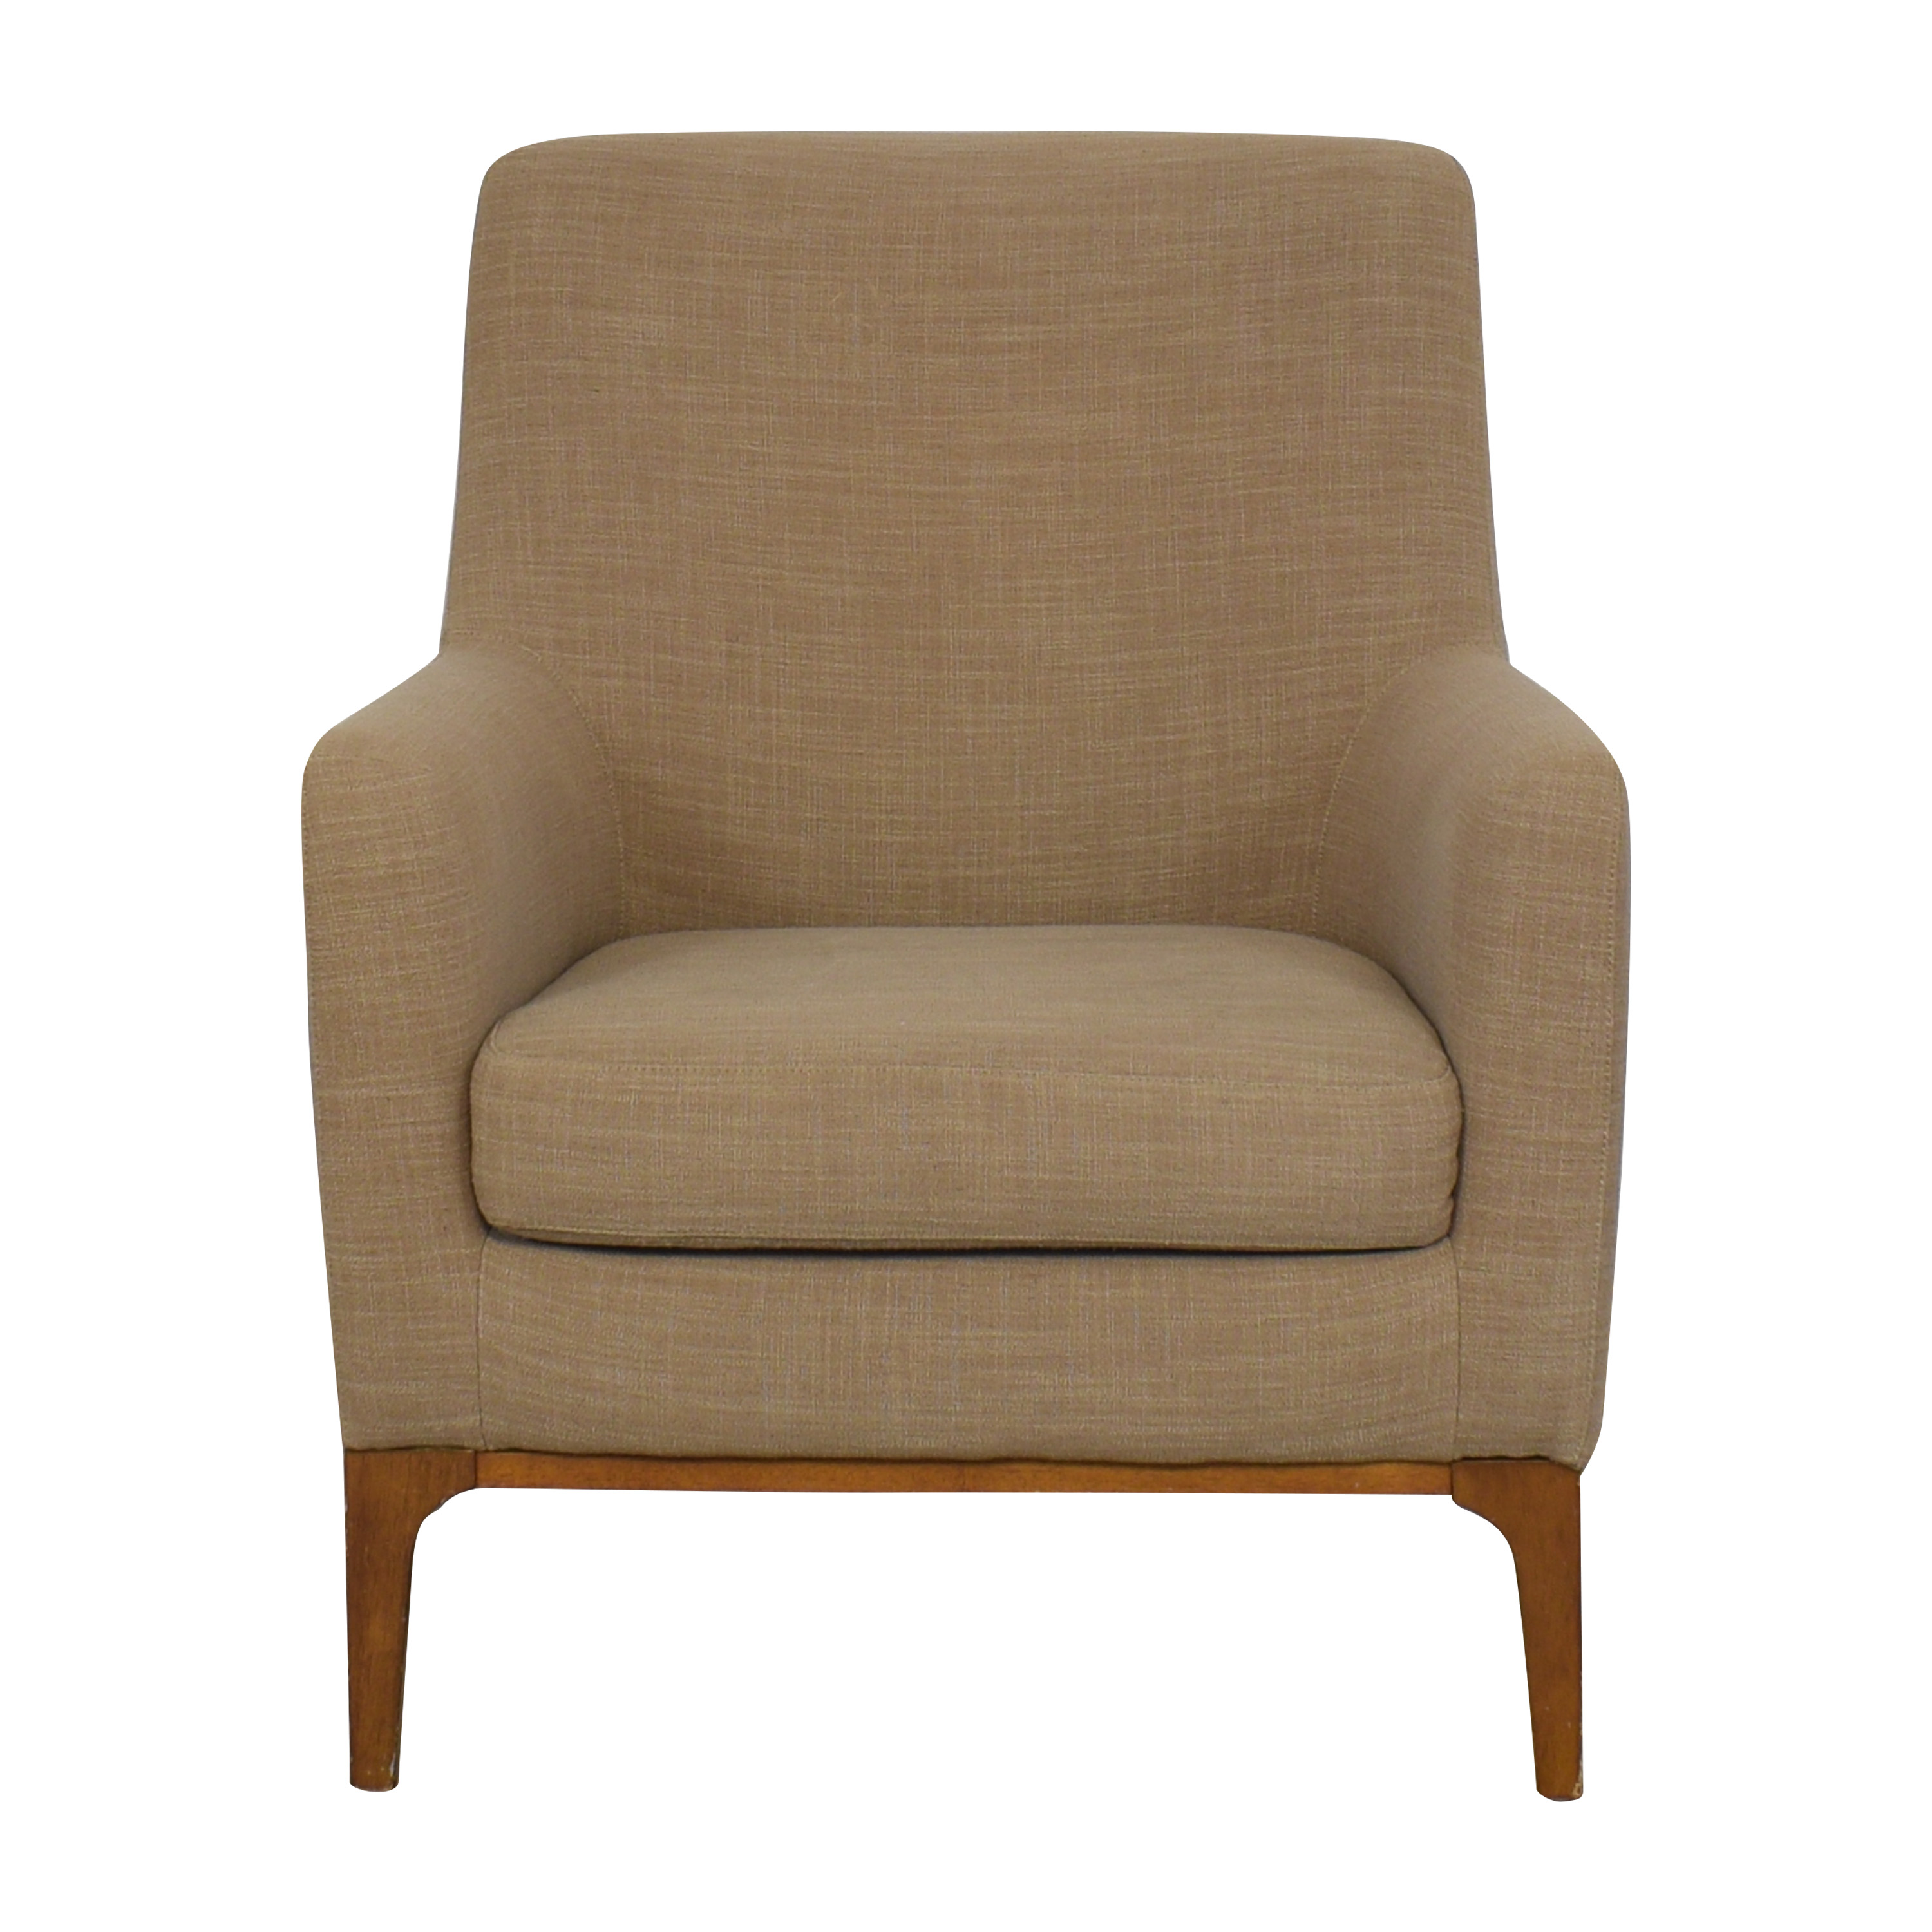 buy West Elm Sloane Chair West Elm Chairs